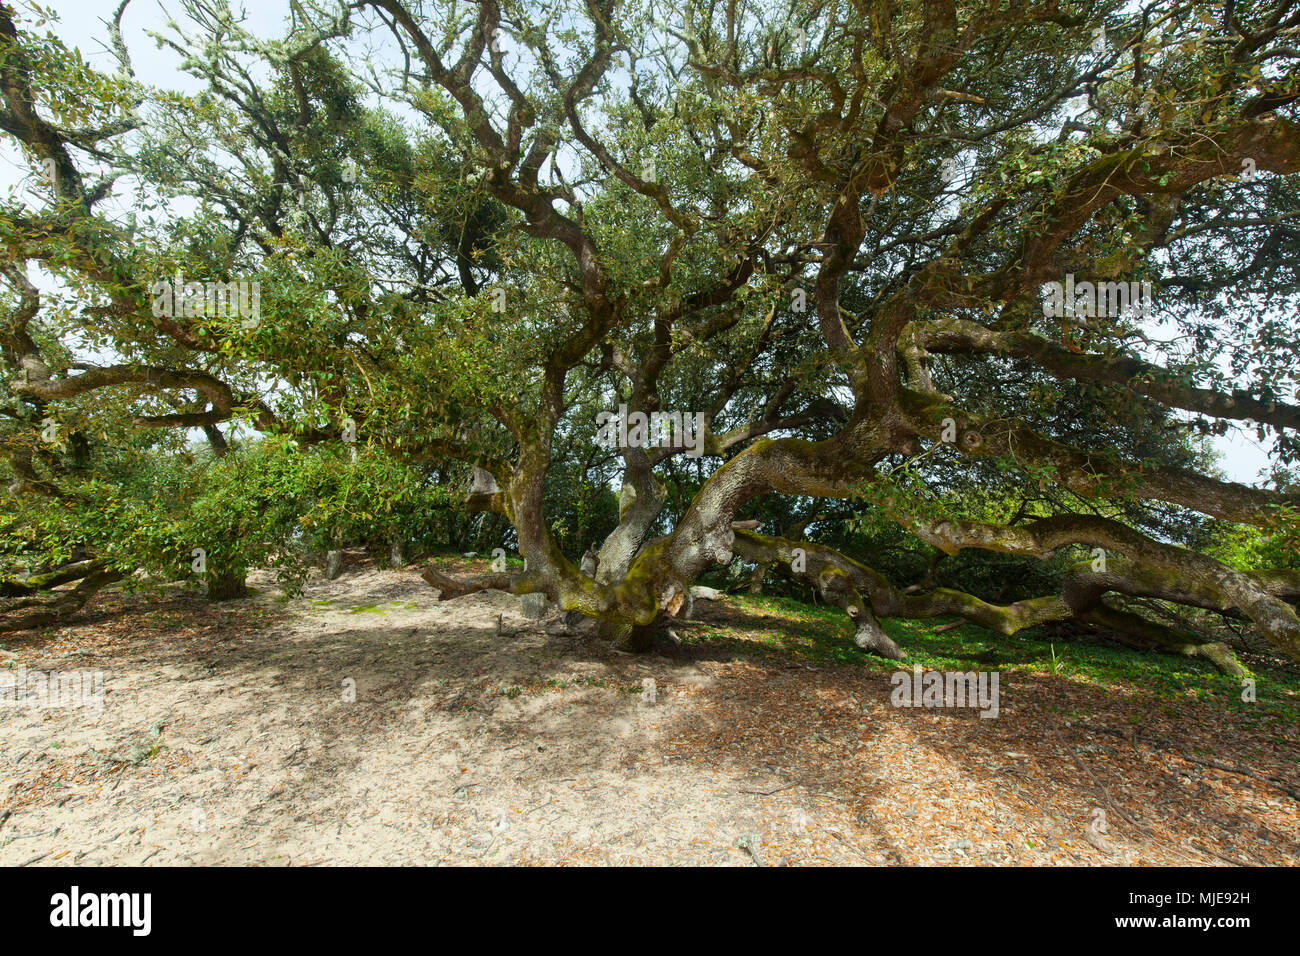 mighty holly oak grows on dune - Stock Image